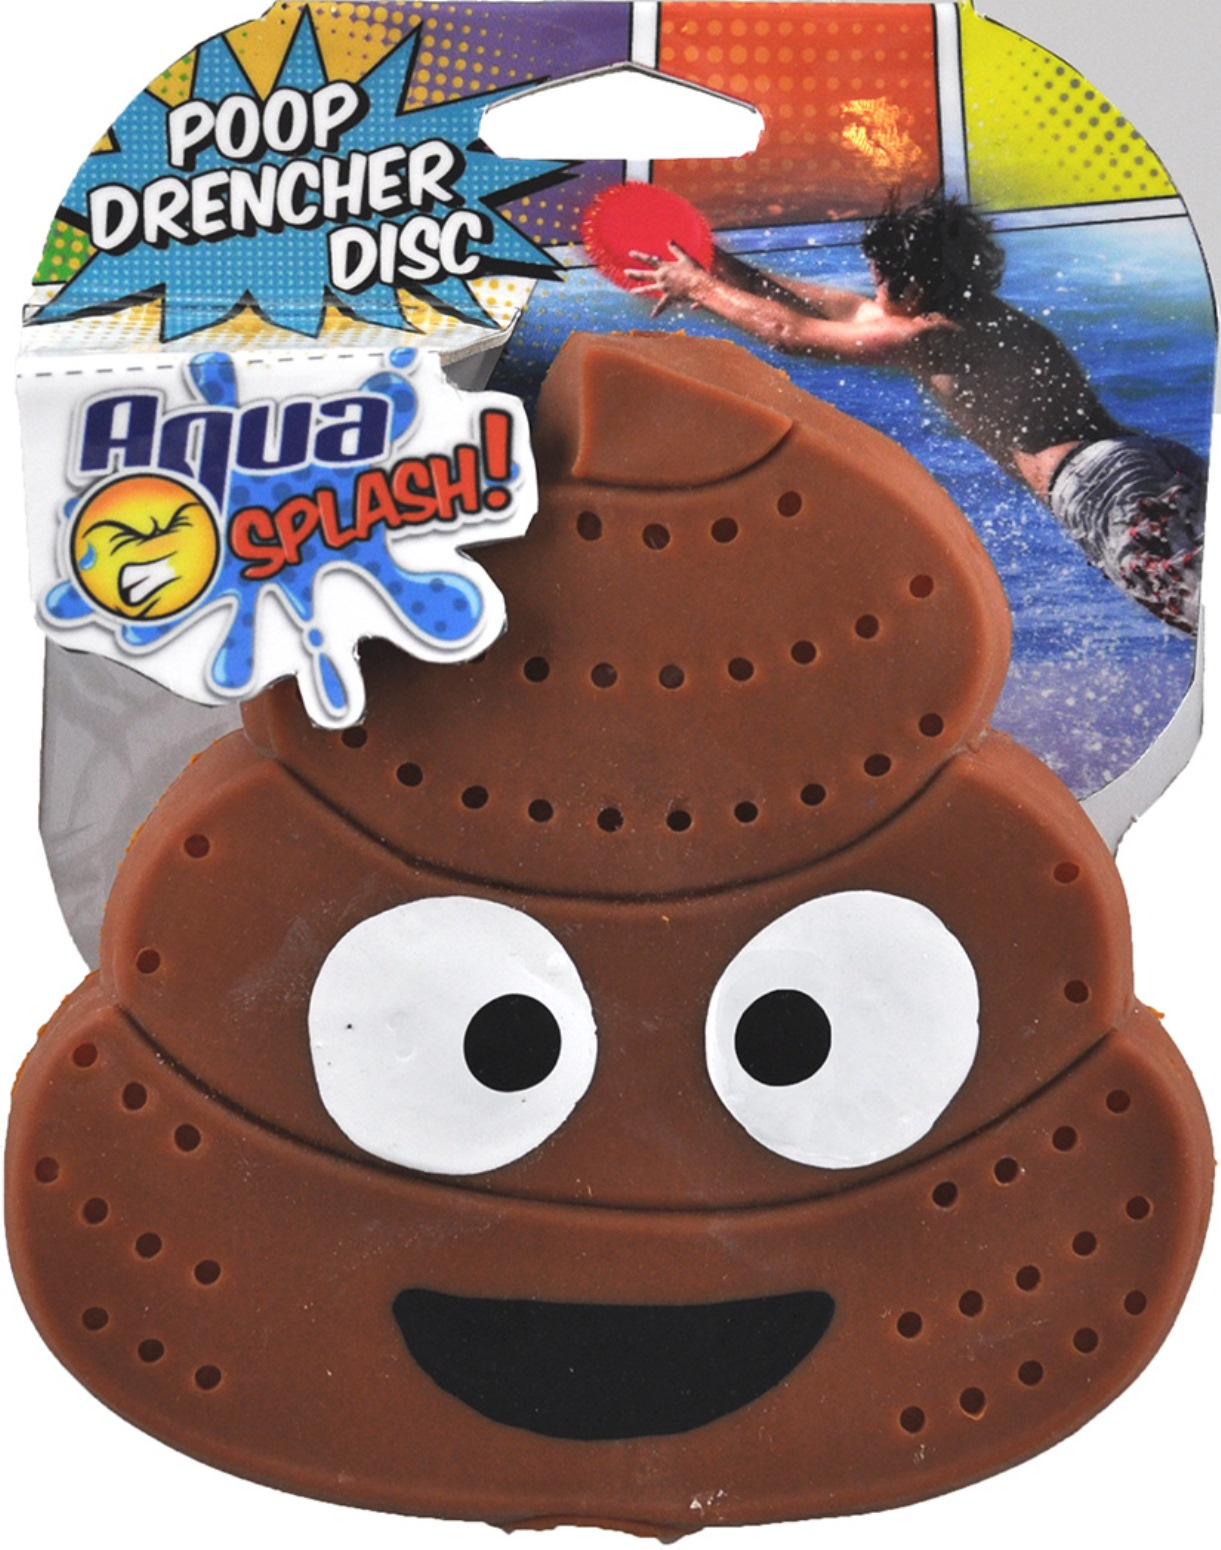 Aqua Splash Toys The Big Stink Drencher   Shop Your Way: Online Shopping & Earn Points on Tools. Appliances. Electronics & more